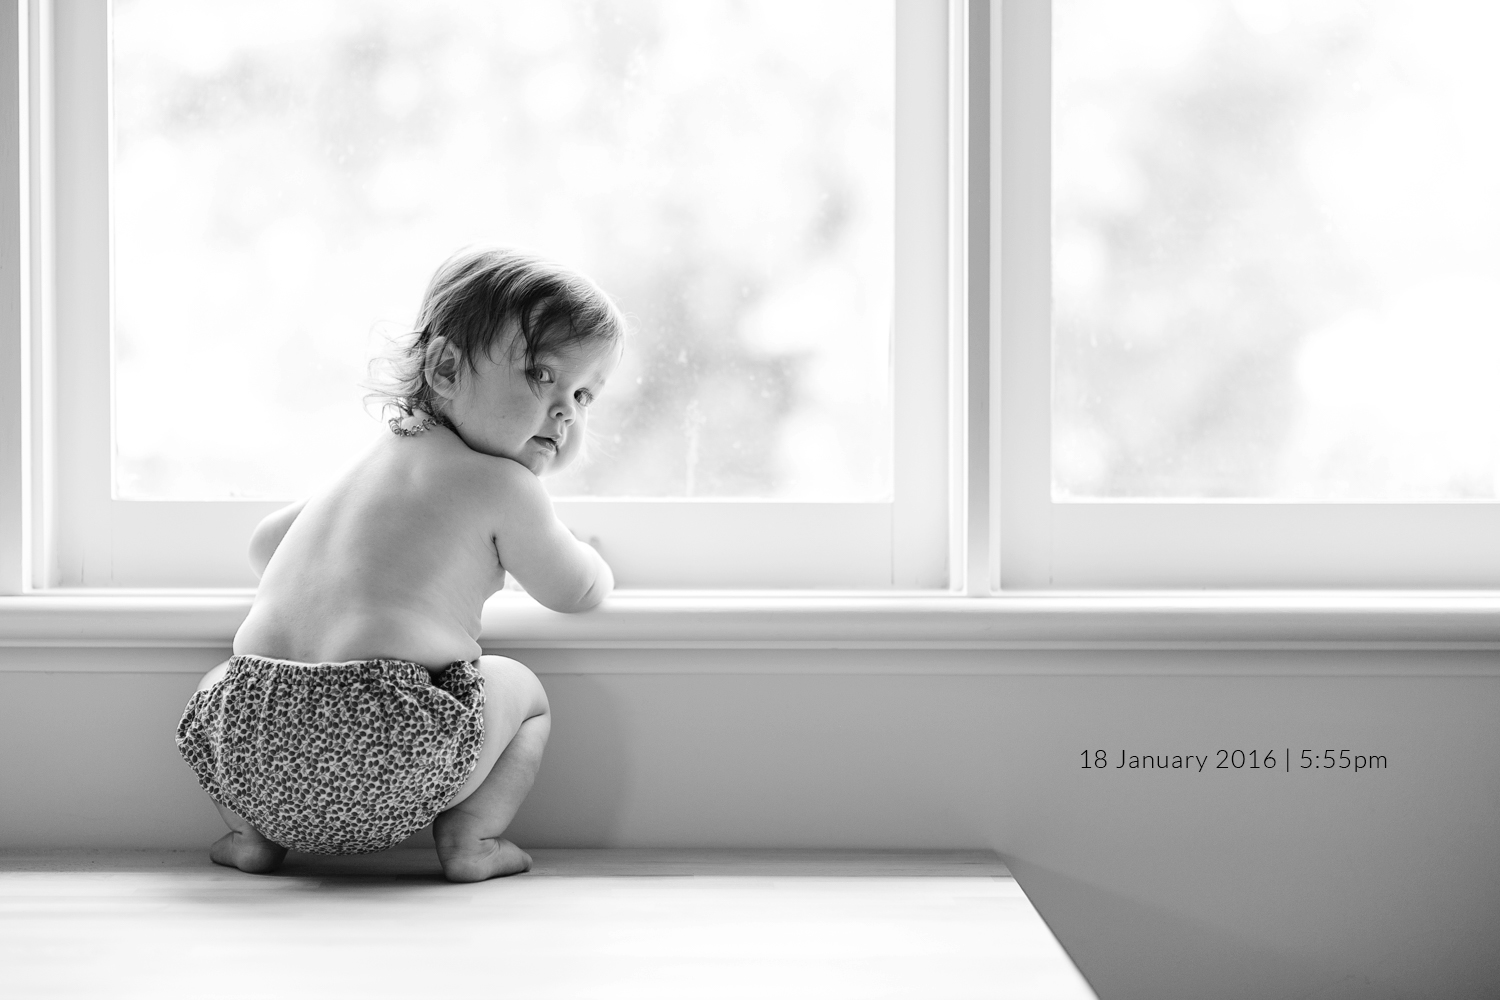 baby-sitting-at-window-photo-a-day-project-day-18.jpg